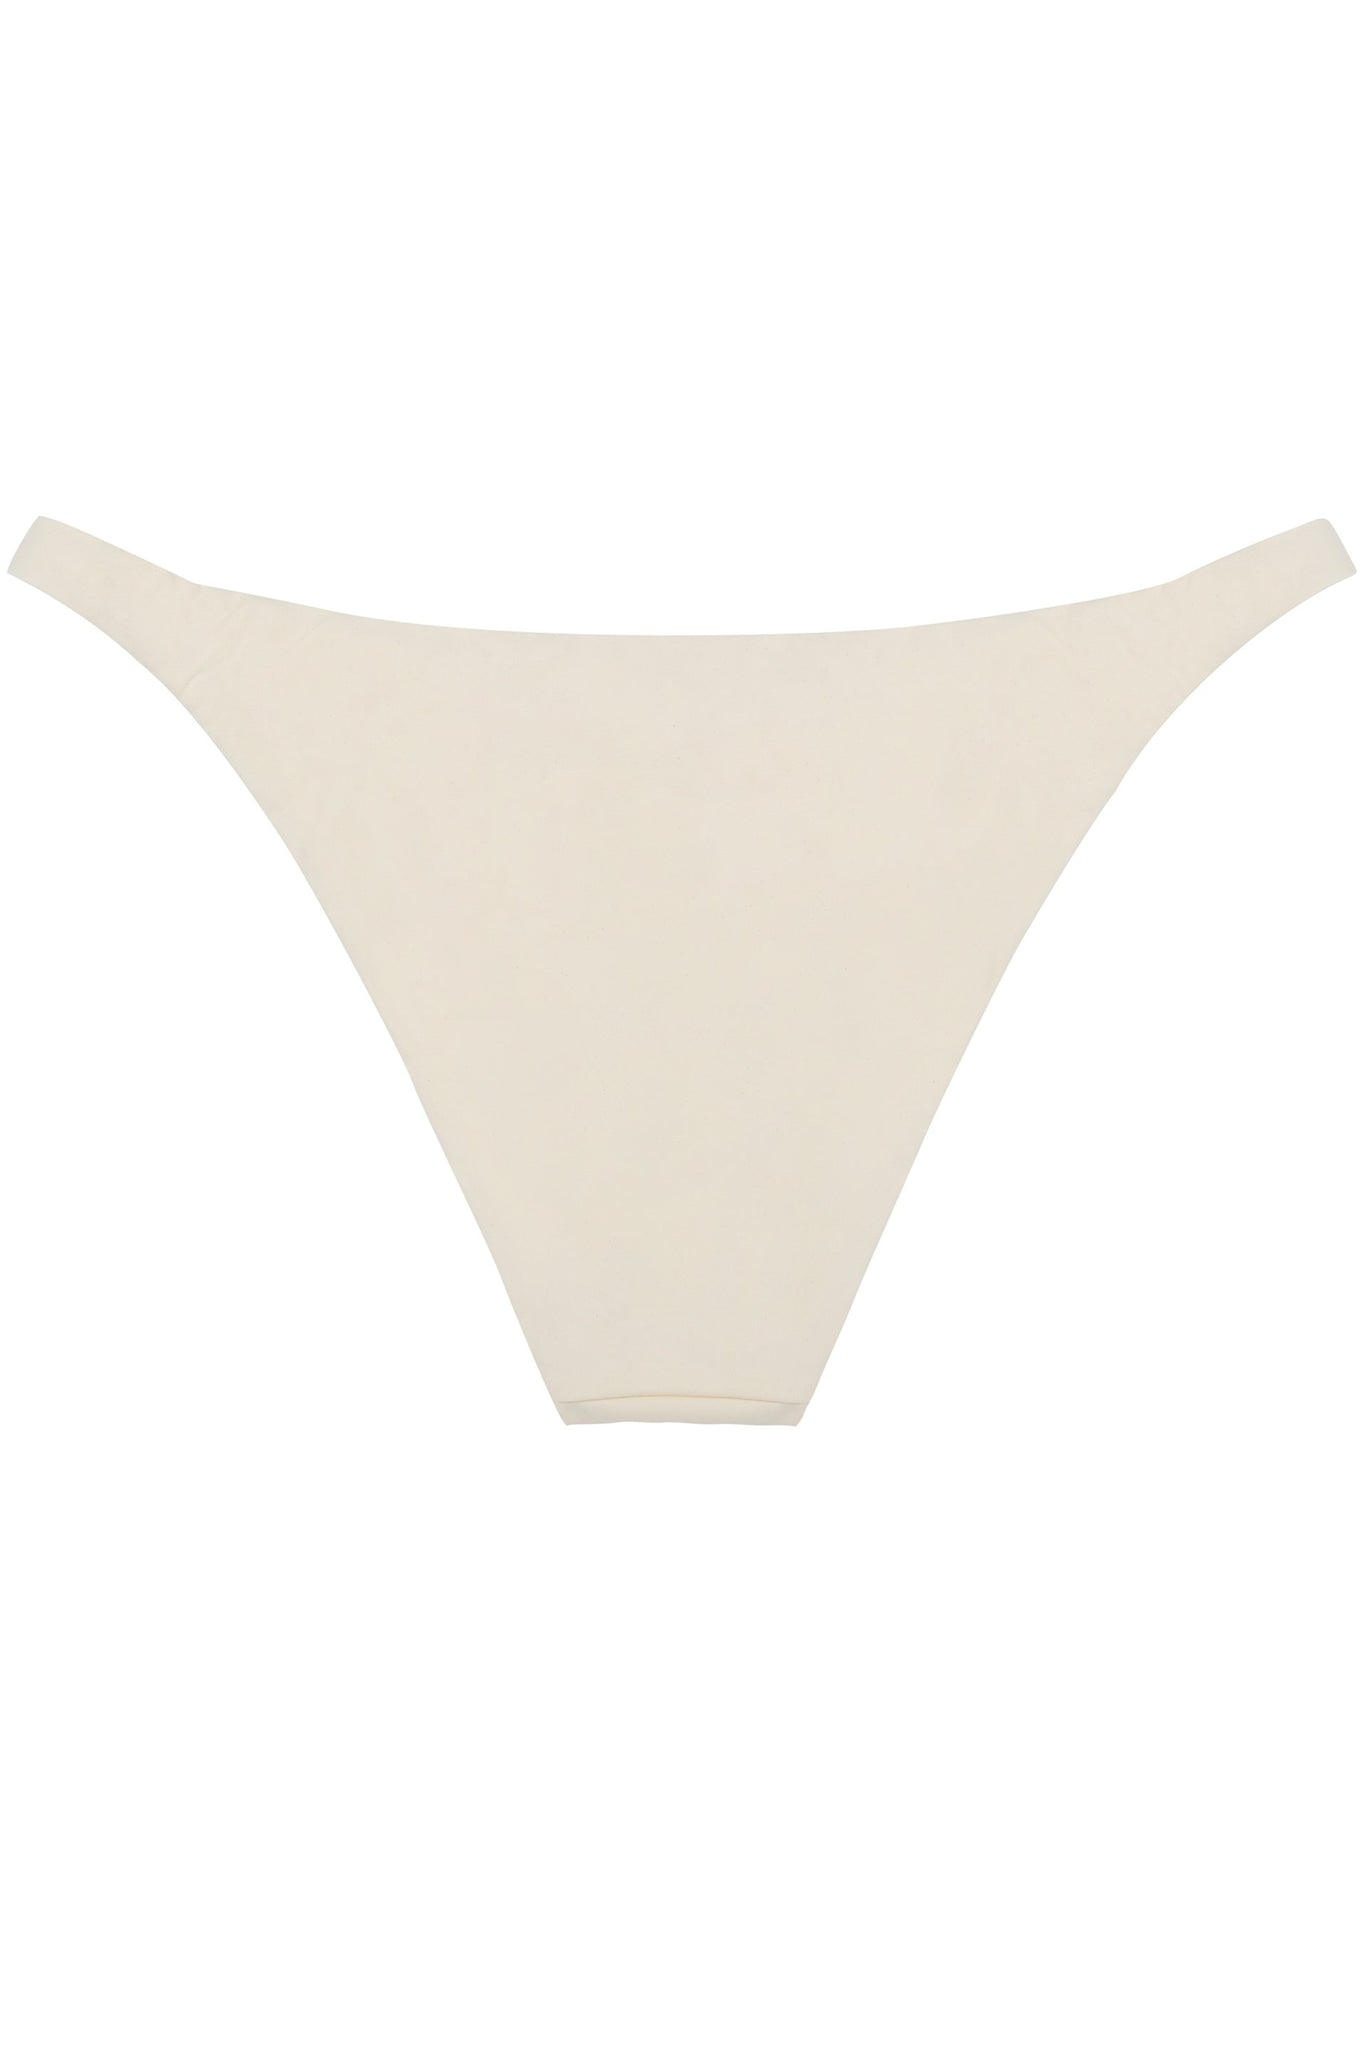 Ring bikini bottom in cream white by Caroline af Rosenborg